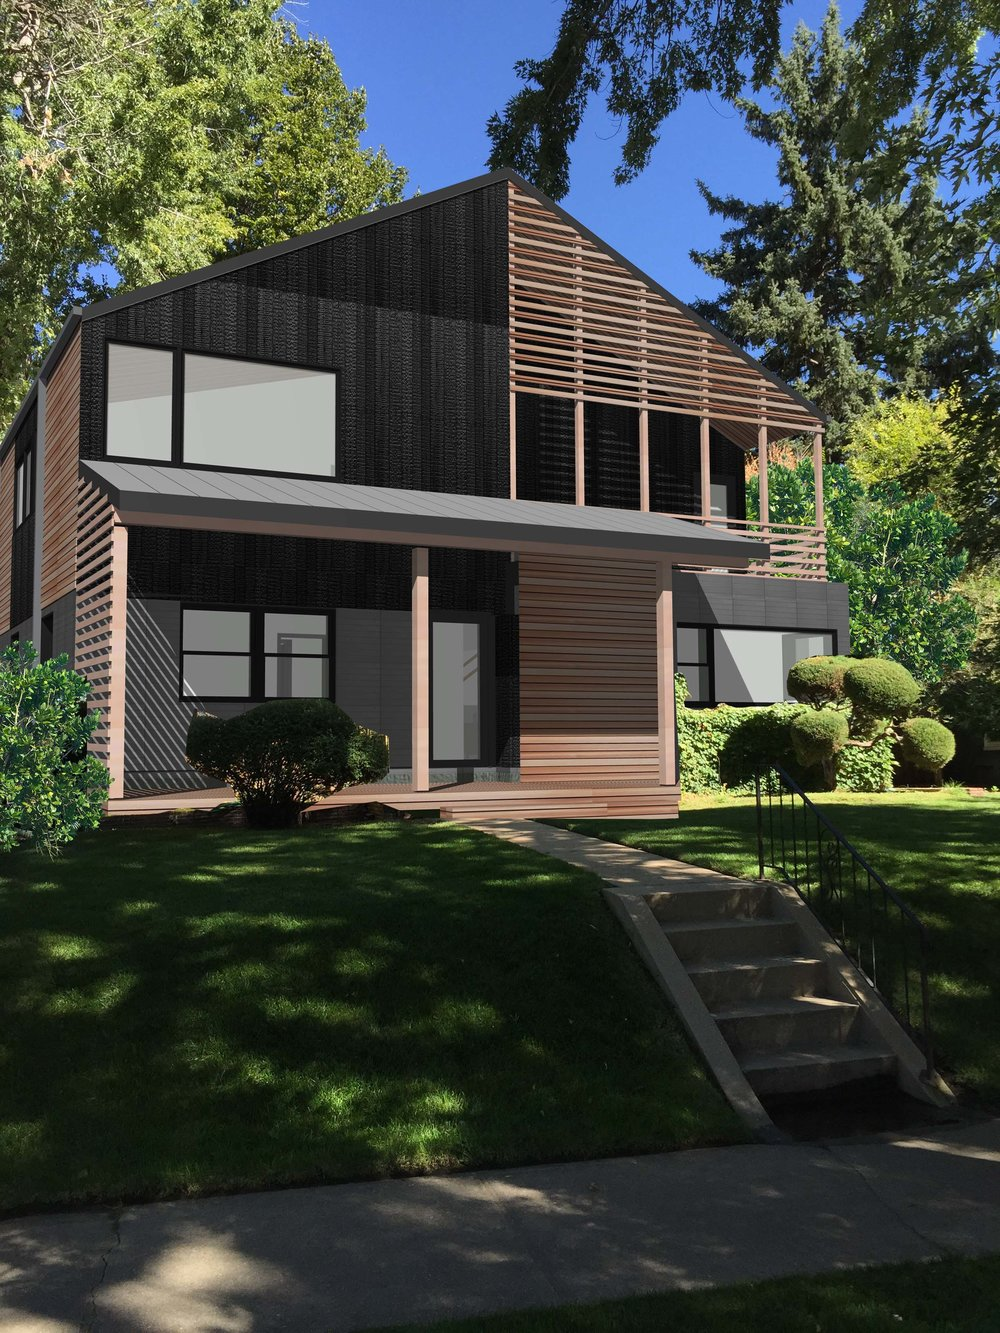 This project is a 2nd story pop-top + addition on single story 1950's era brick ranch house located in the Highlands neighborhood of Denver, Colorado.  We anticipate breaking ground spring 2017.